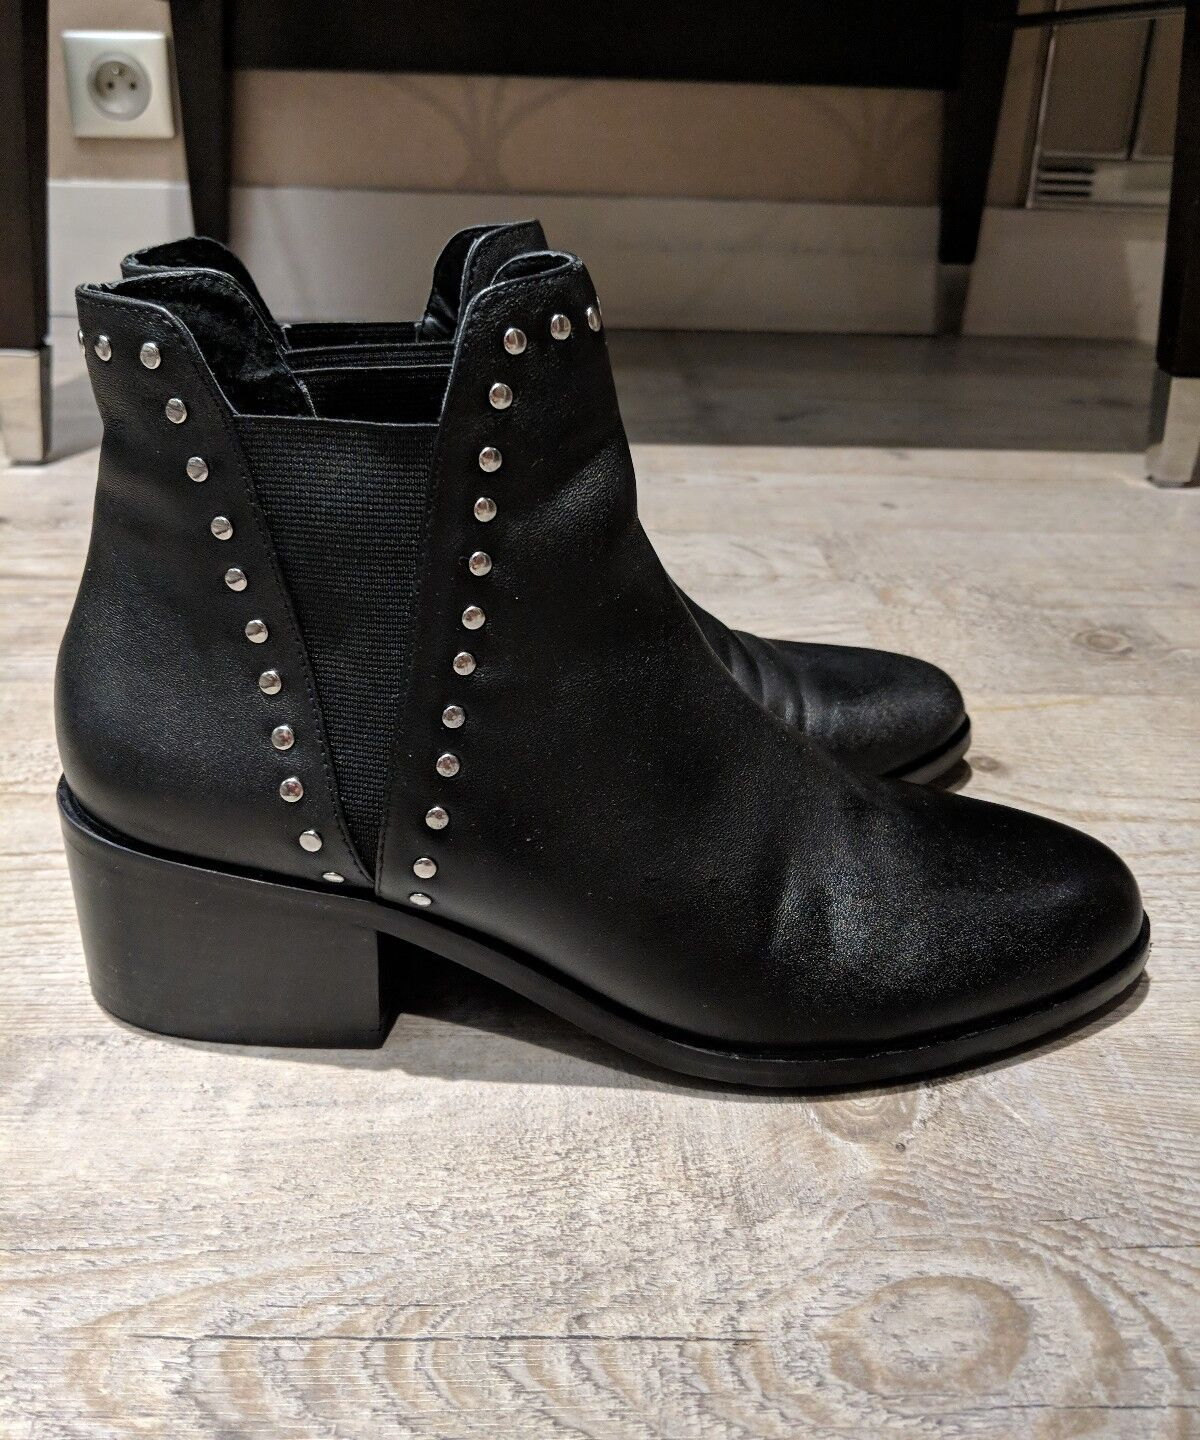 ONLY WORN FOR 5 DAYS - Steve madden studded boots PAID  + tax